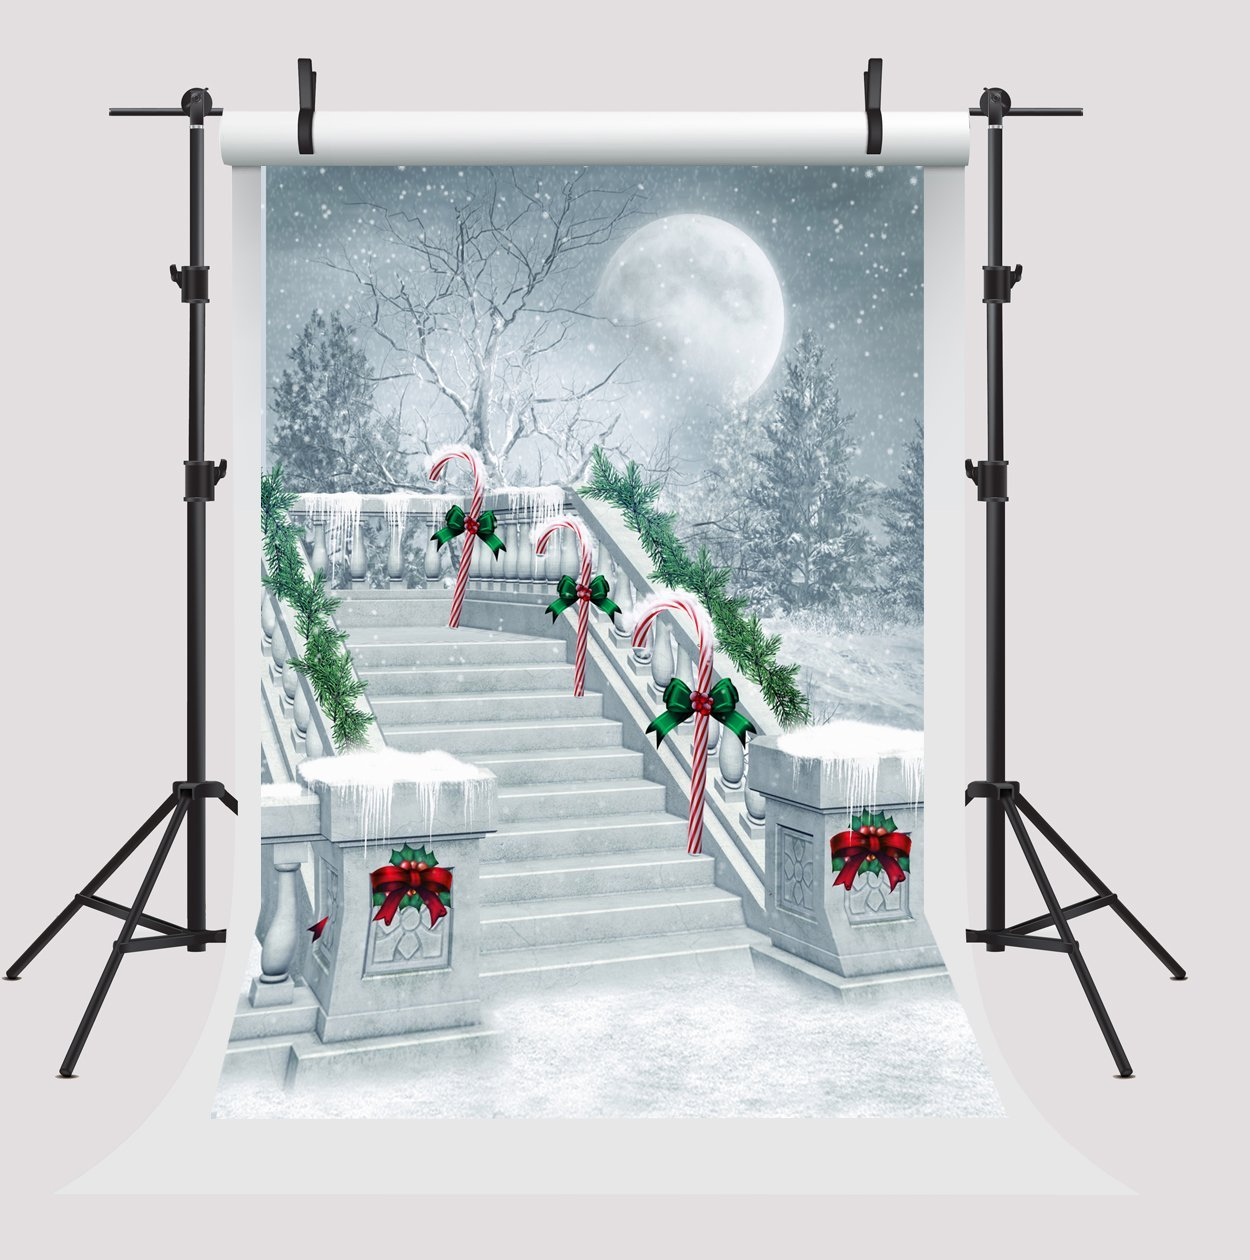 MOHome Polyster 5x7ft Christmas Photography Backdrop Snow Vintage Stairs Background Moon Snowflake Photo Studio Props for Photographers